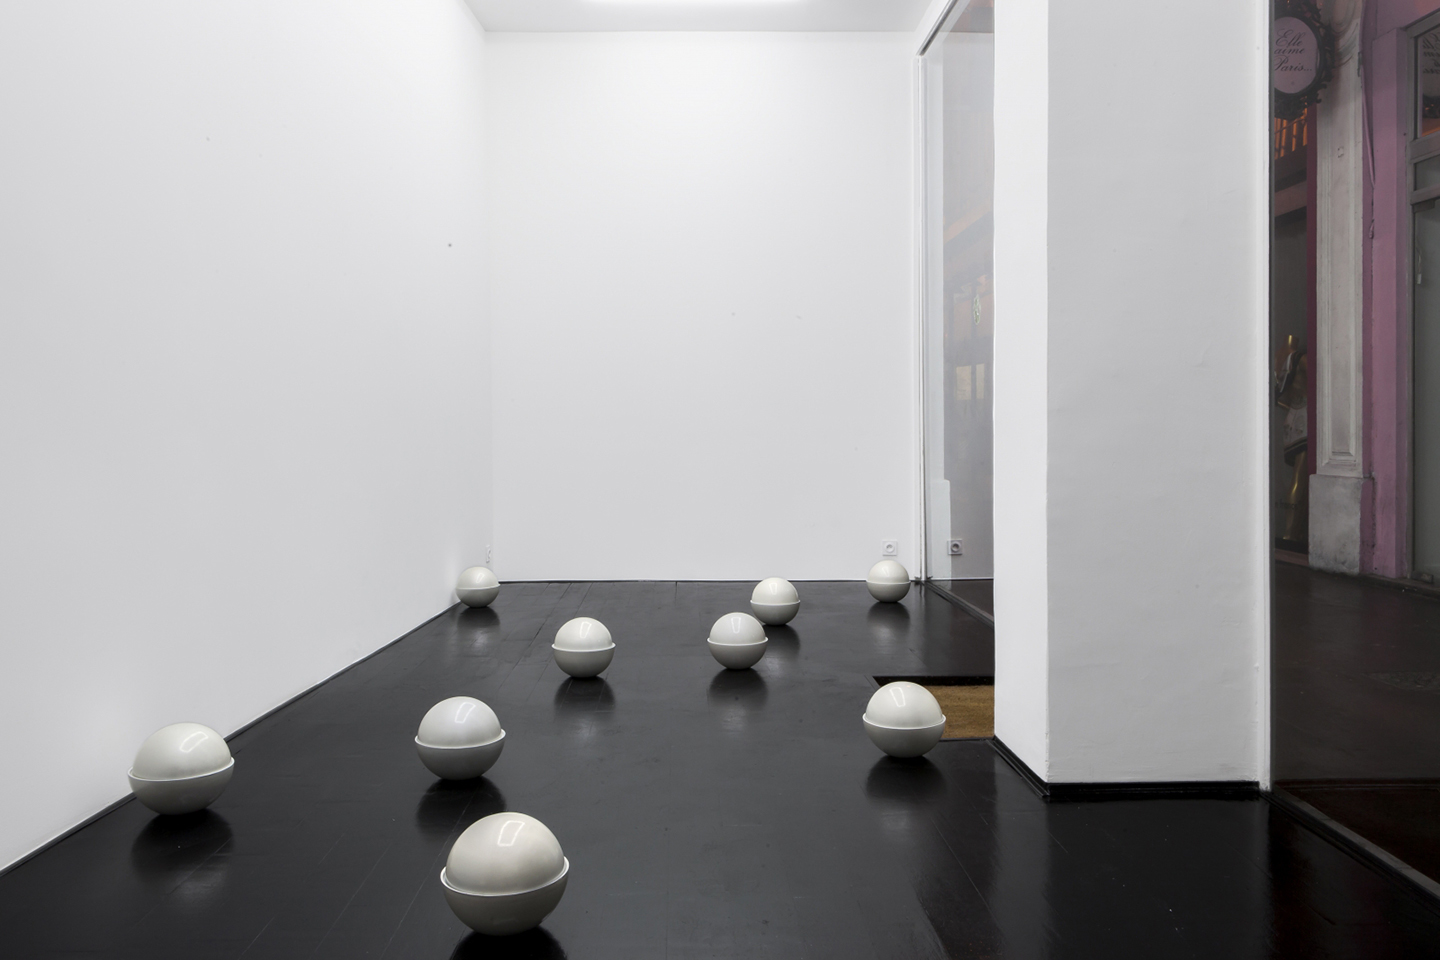 """1ff38663a8 Guillaume Maraud """"The Last Days of. 23.10 – 5.12.15"""" at Édouard Montassut,  Paris, 2015. Courtesy: the artist and Édouard Montassut, Paris."""